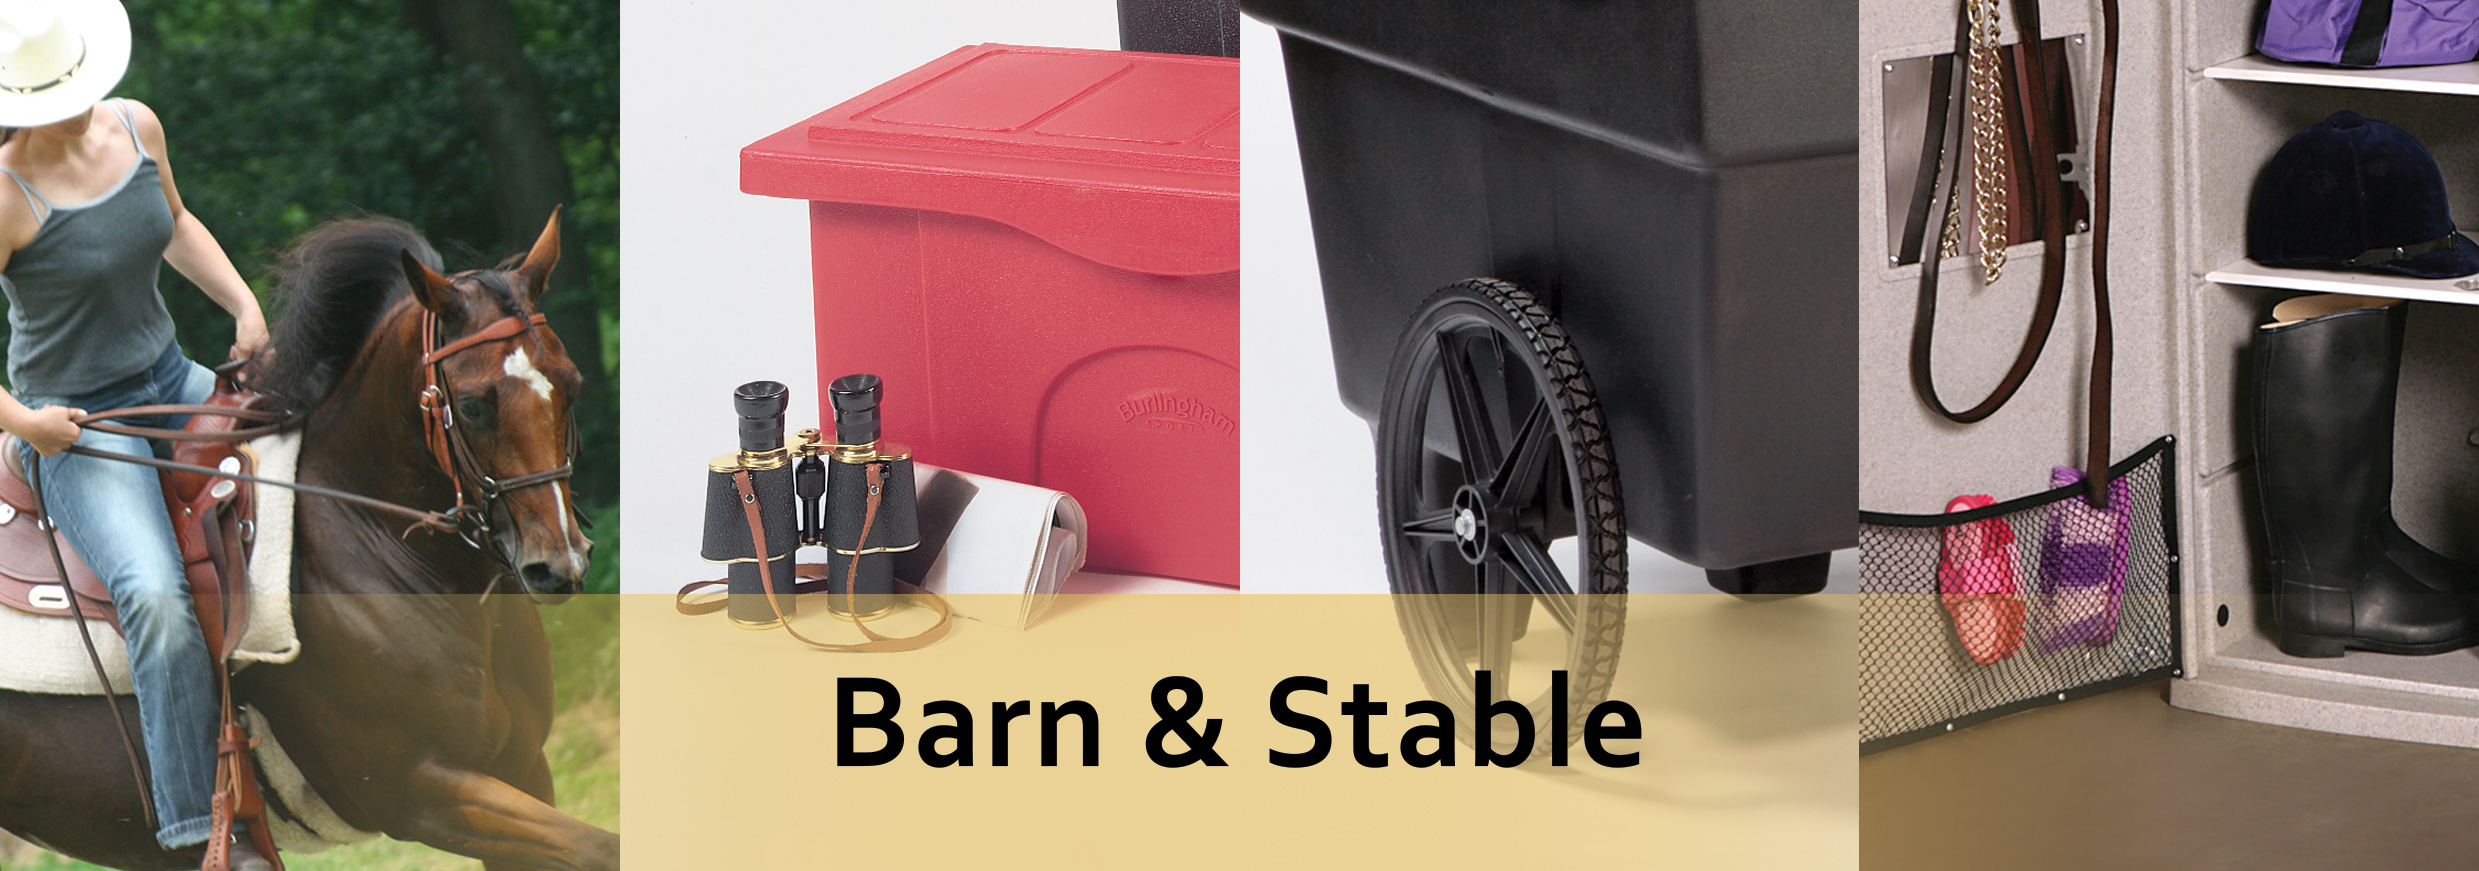 barn and stable landing page